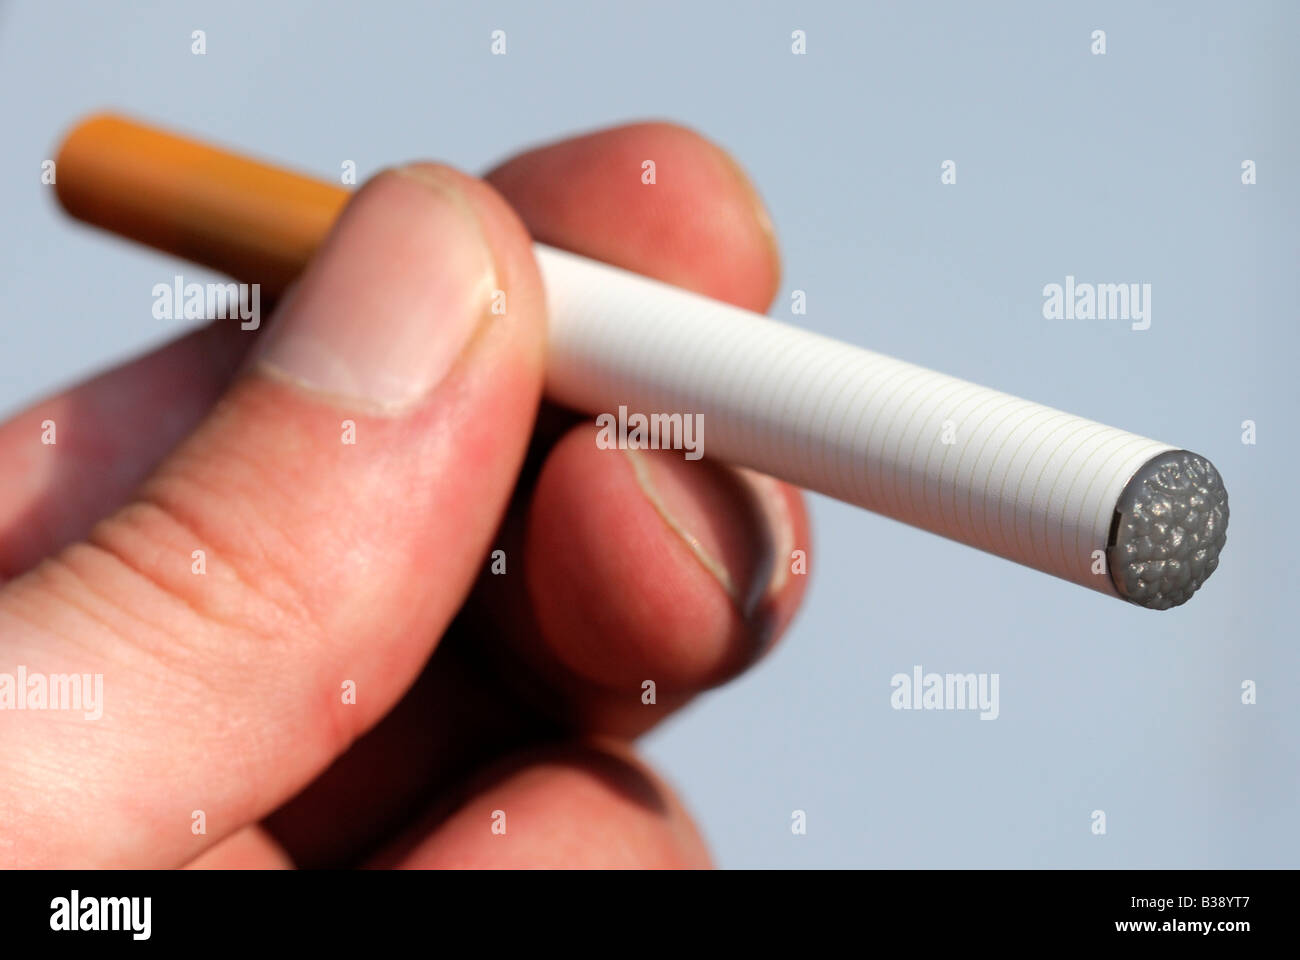 The Electronic Cigarette a device that simulates the functions of a cigarette without the harmful chemicals - Stock Image